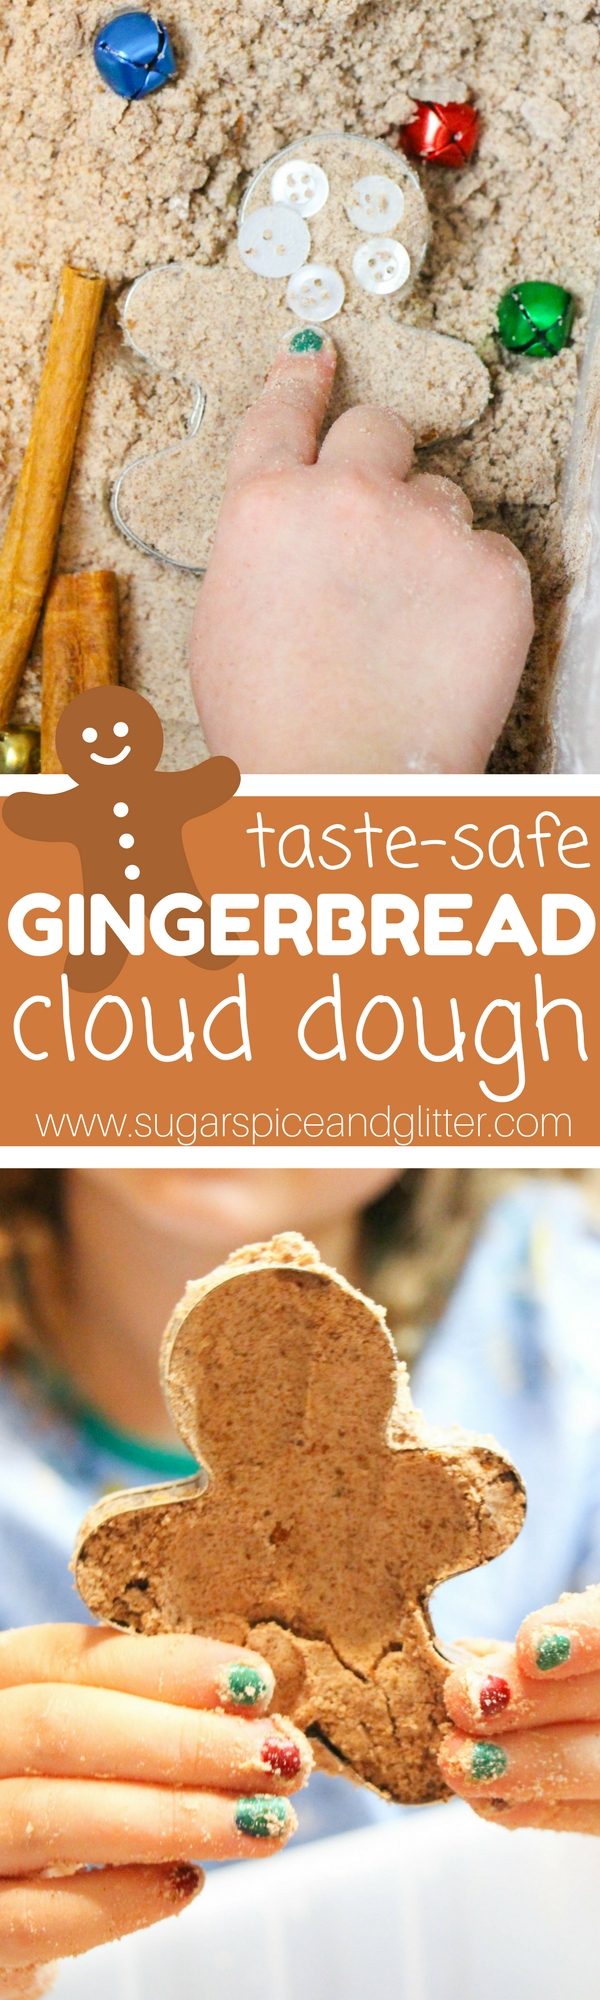 Gingerbread Cloud Dough